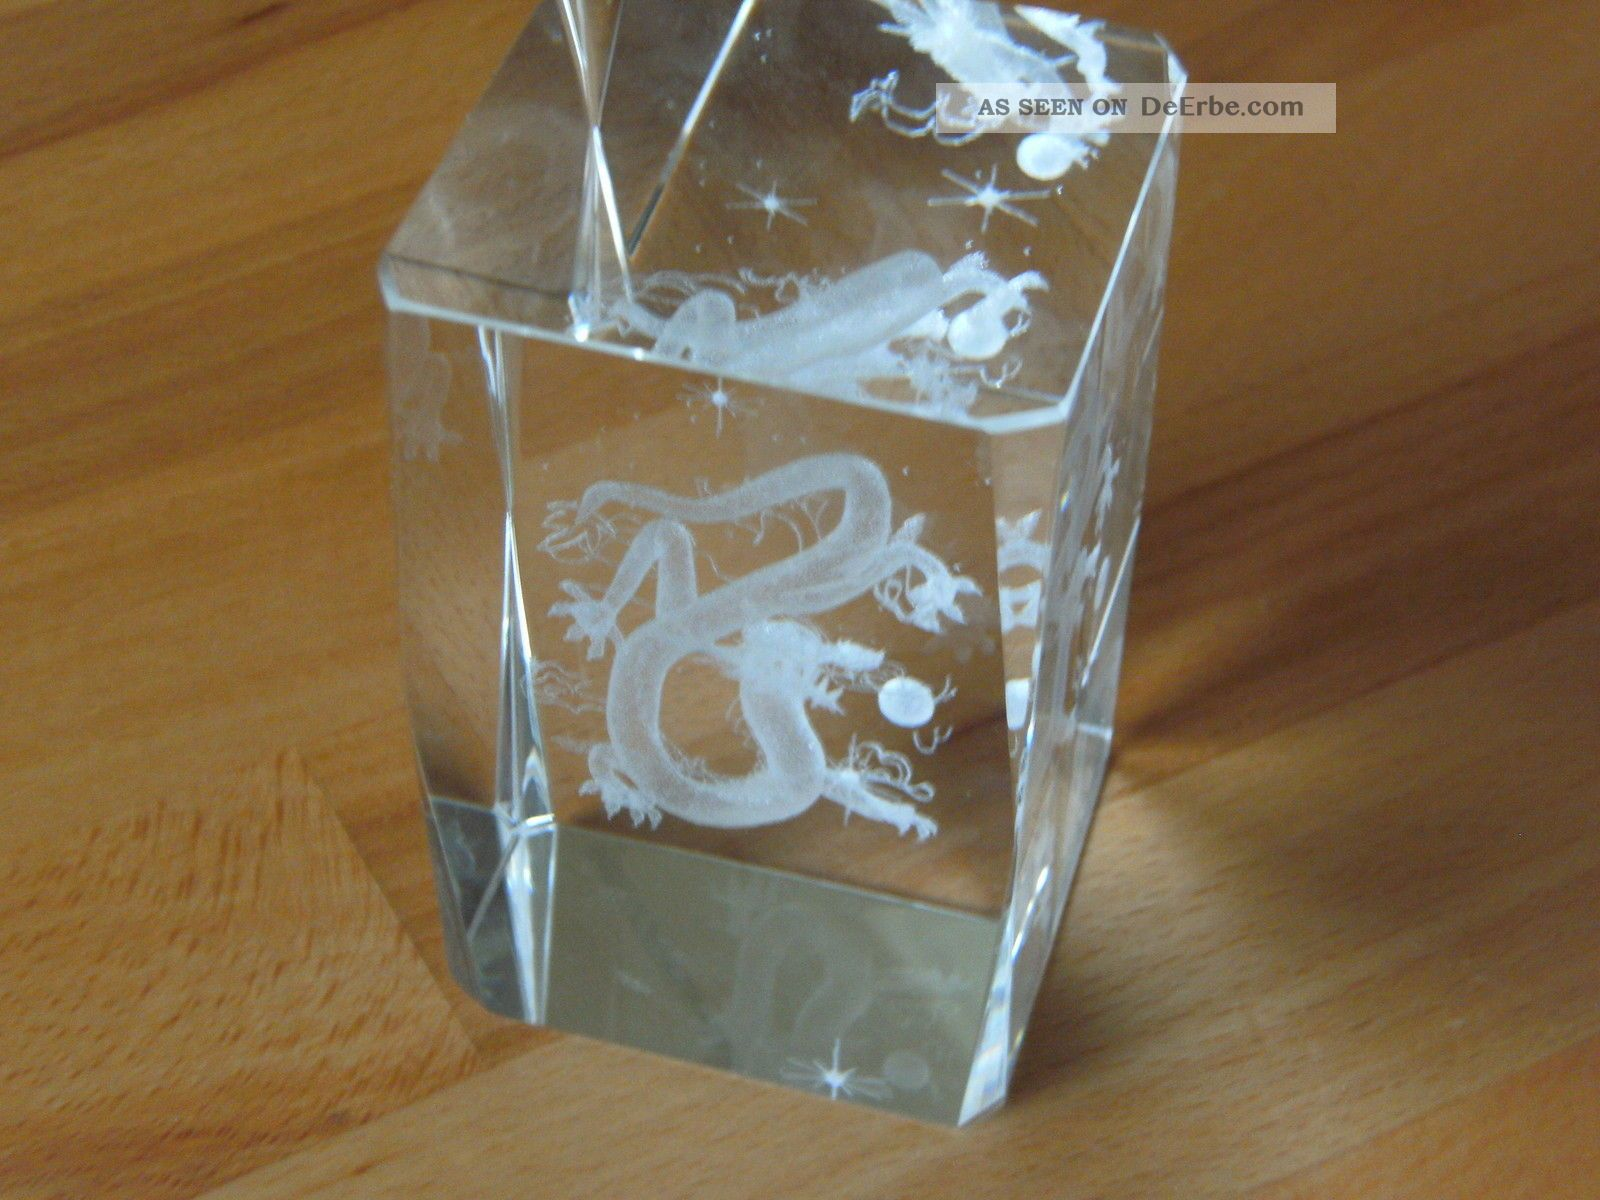 glasdrache 3d glas mit geschenkbox. Black Bedroom Furniture Sets. Home Design Ideas